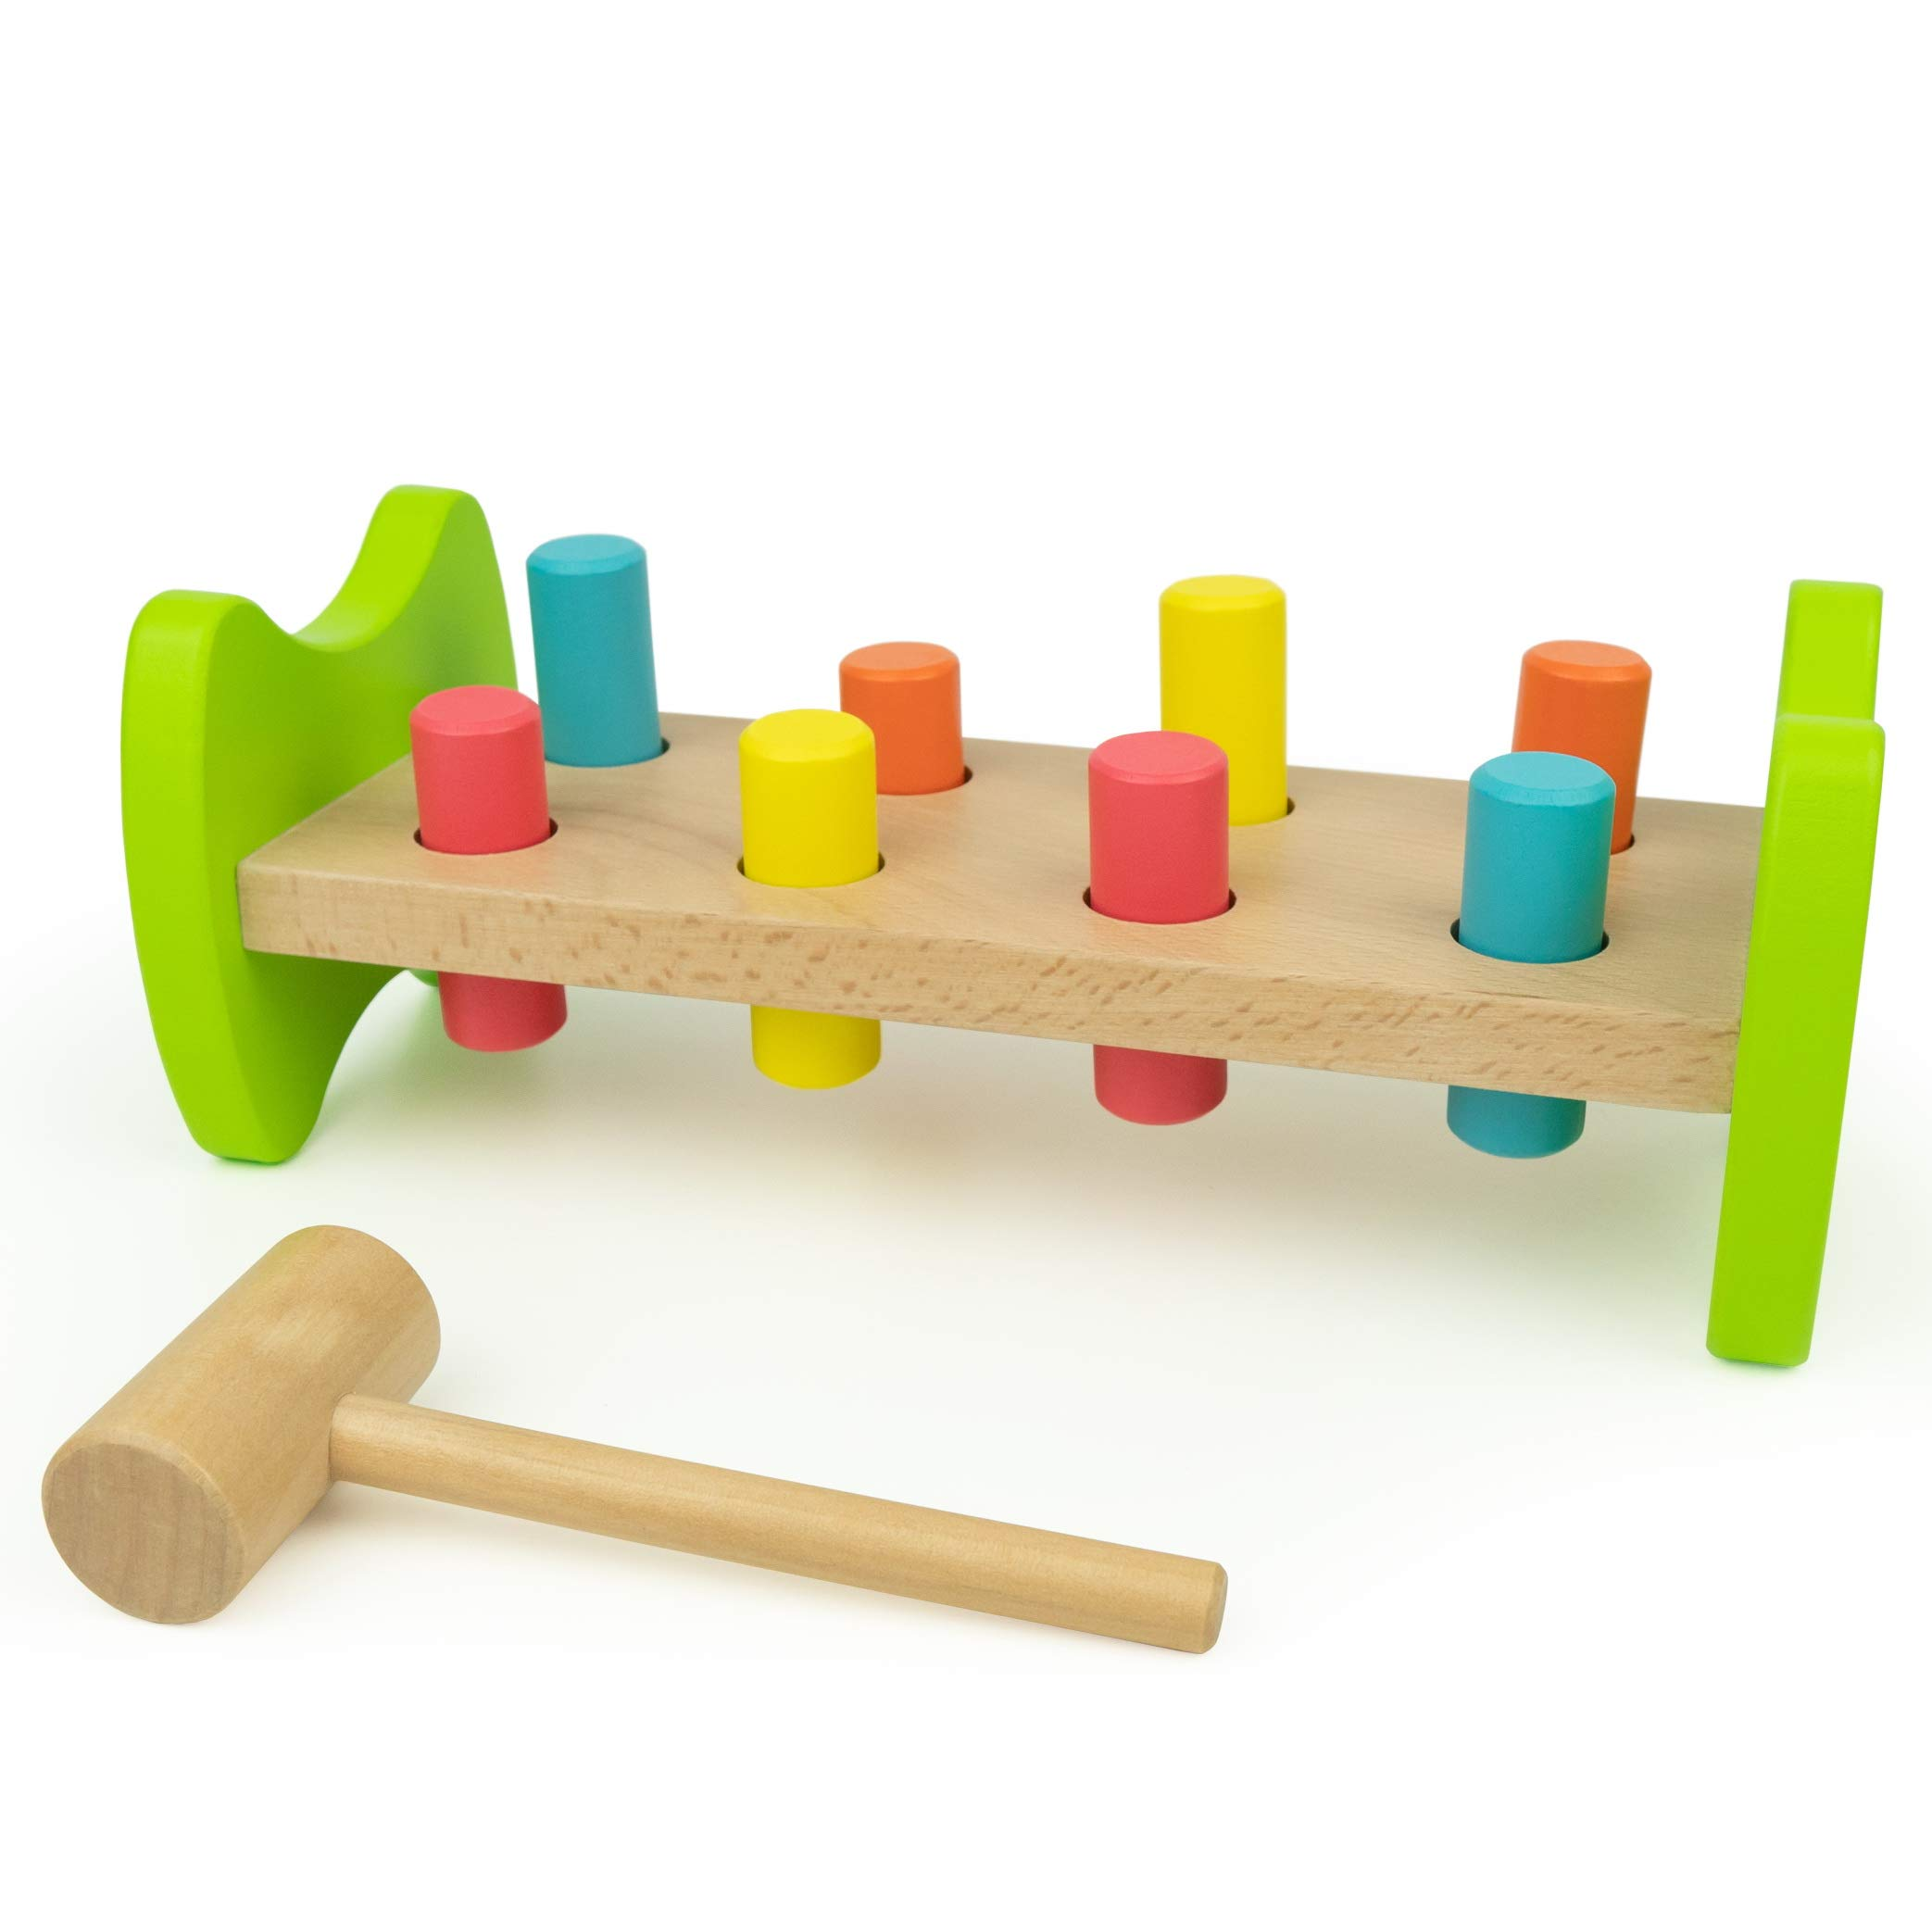 Bimi Boo Wooden Pounding Bench Classic Toy with 8 Pegs and Mallet for Toddlers